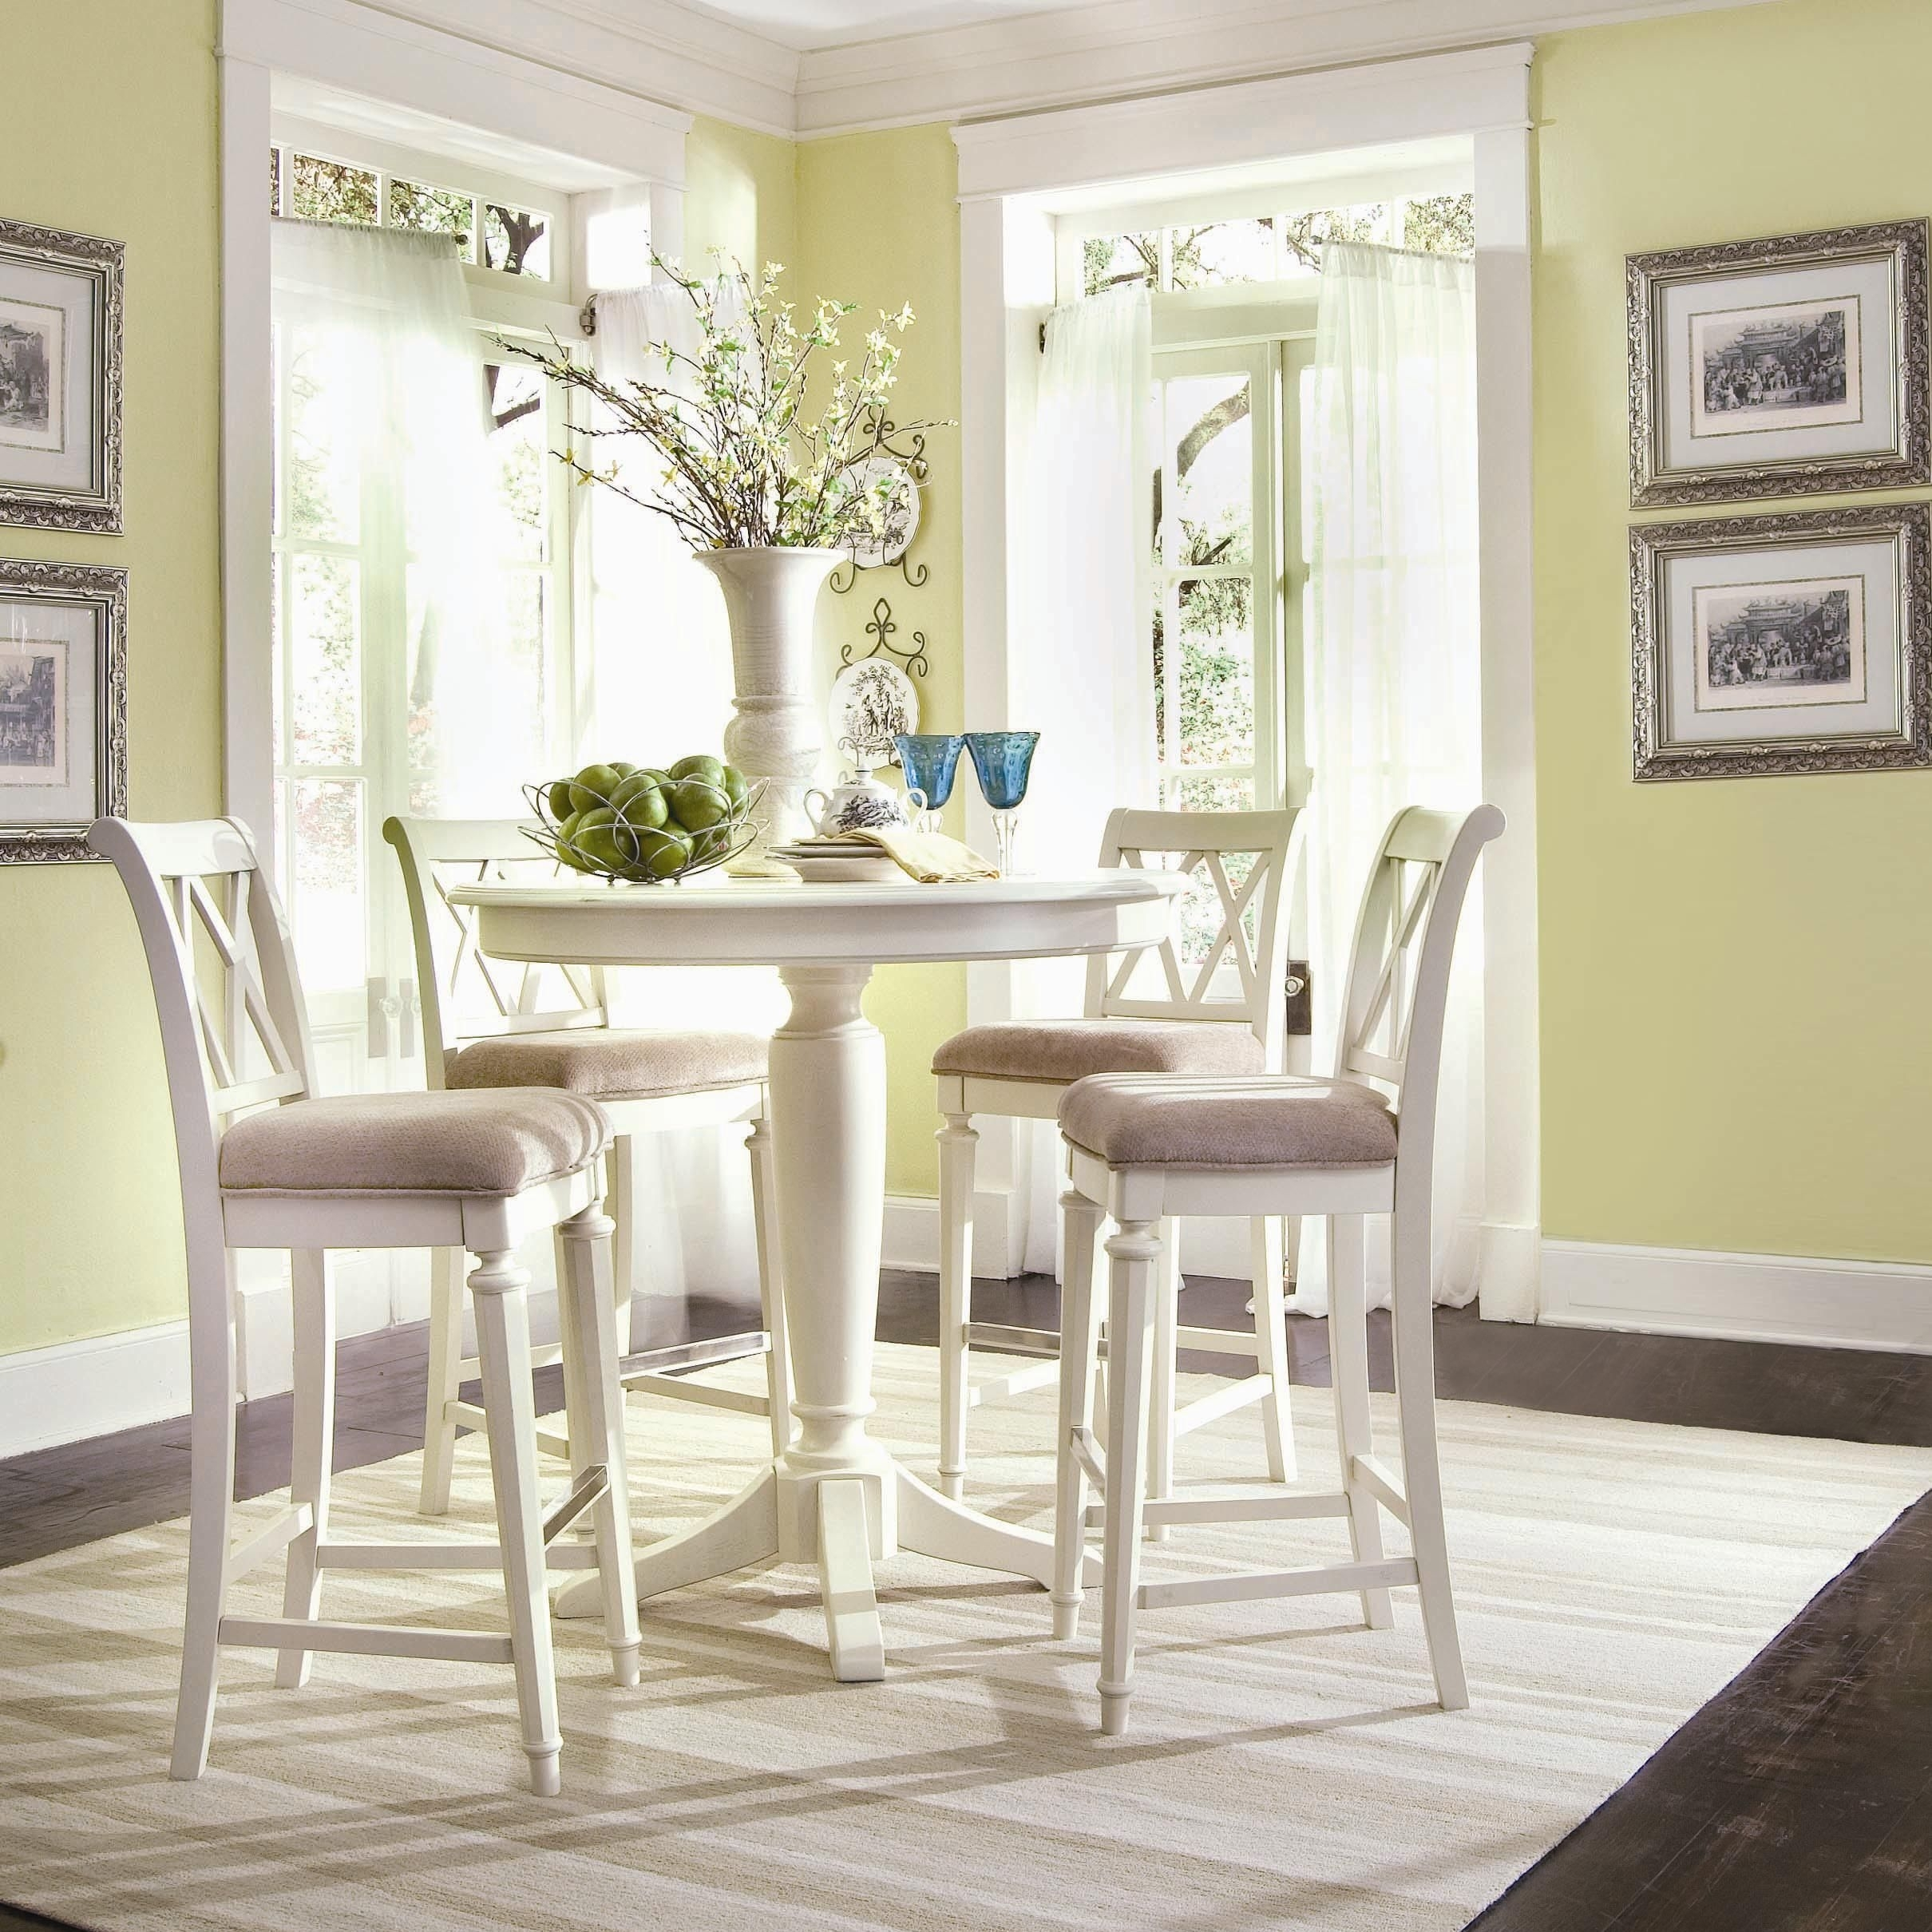 Create A Cottage Look With A Small Gathering Table! #cottage #life With Regard To Most Up To Date Palazzo 7 Piece Dining Sets With Pearson White Side Chairs (Photo 12 of 20)